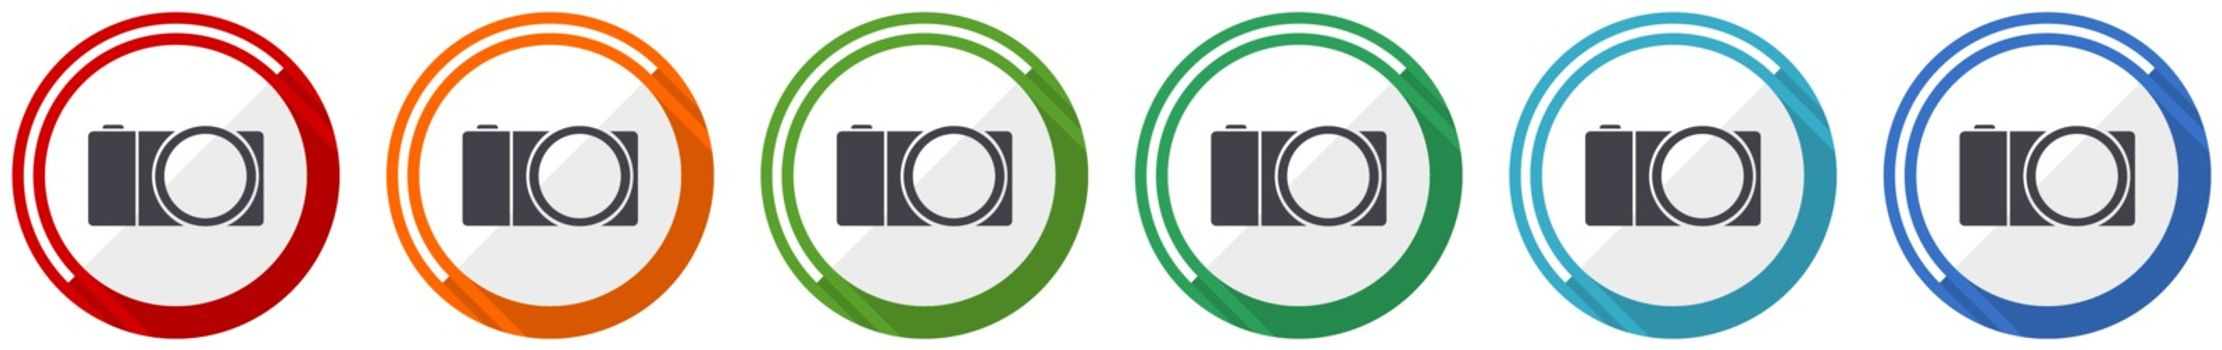 Mirrorless camera icon set, photography flat design vector illustration in 6 colors options for webdesign and mobile applications